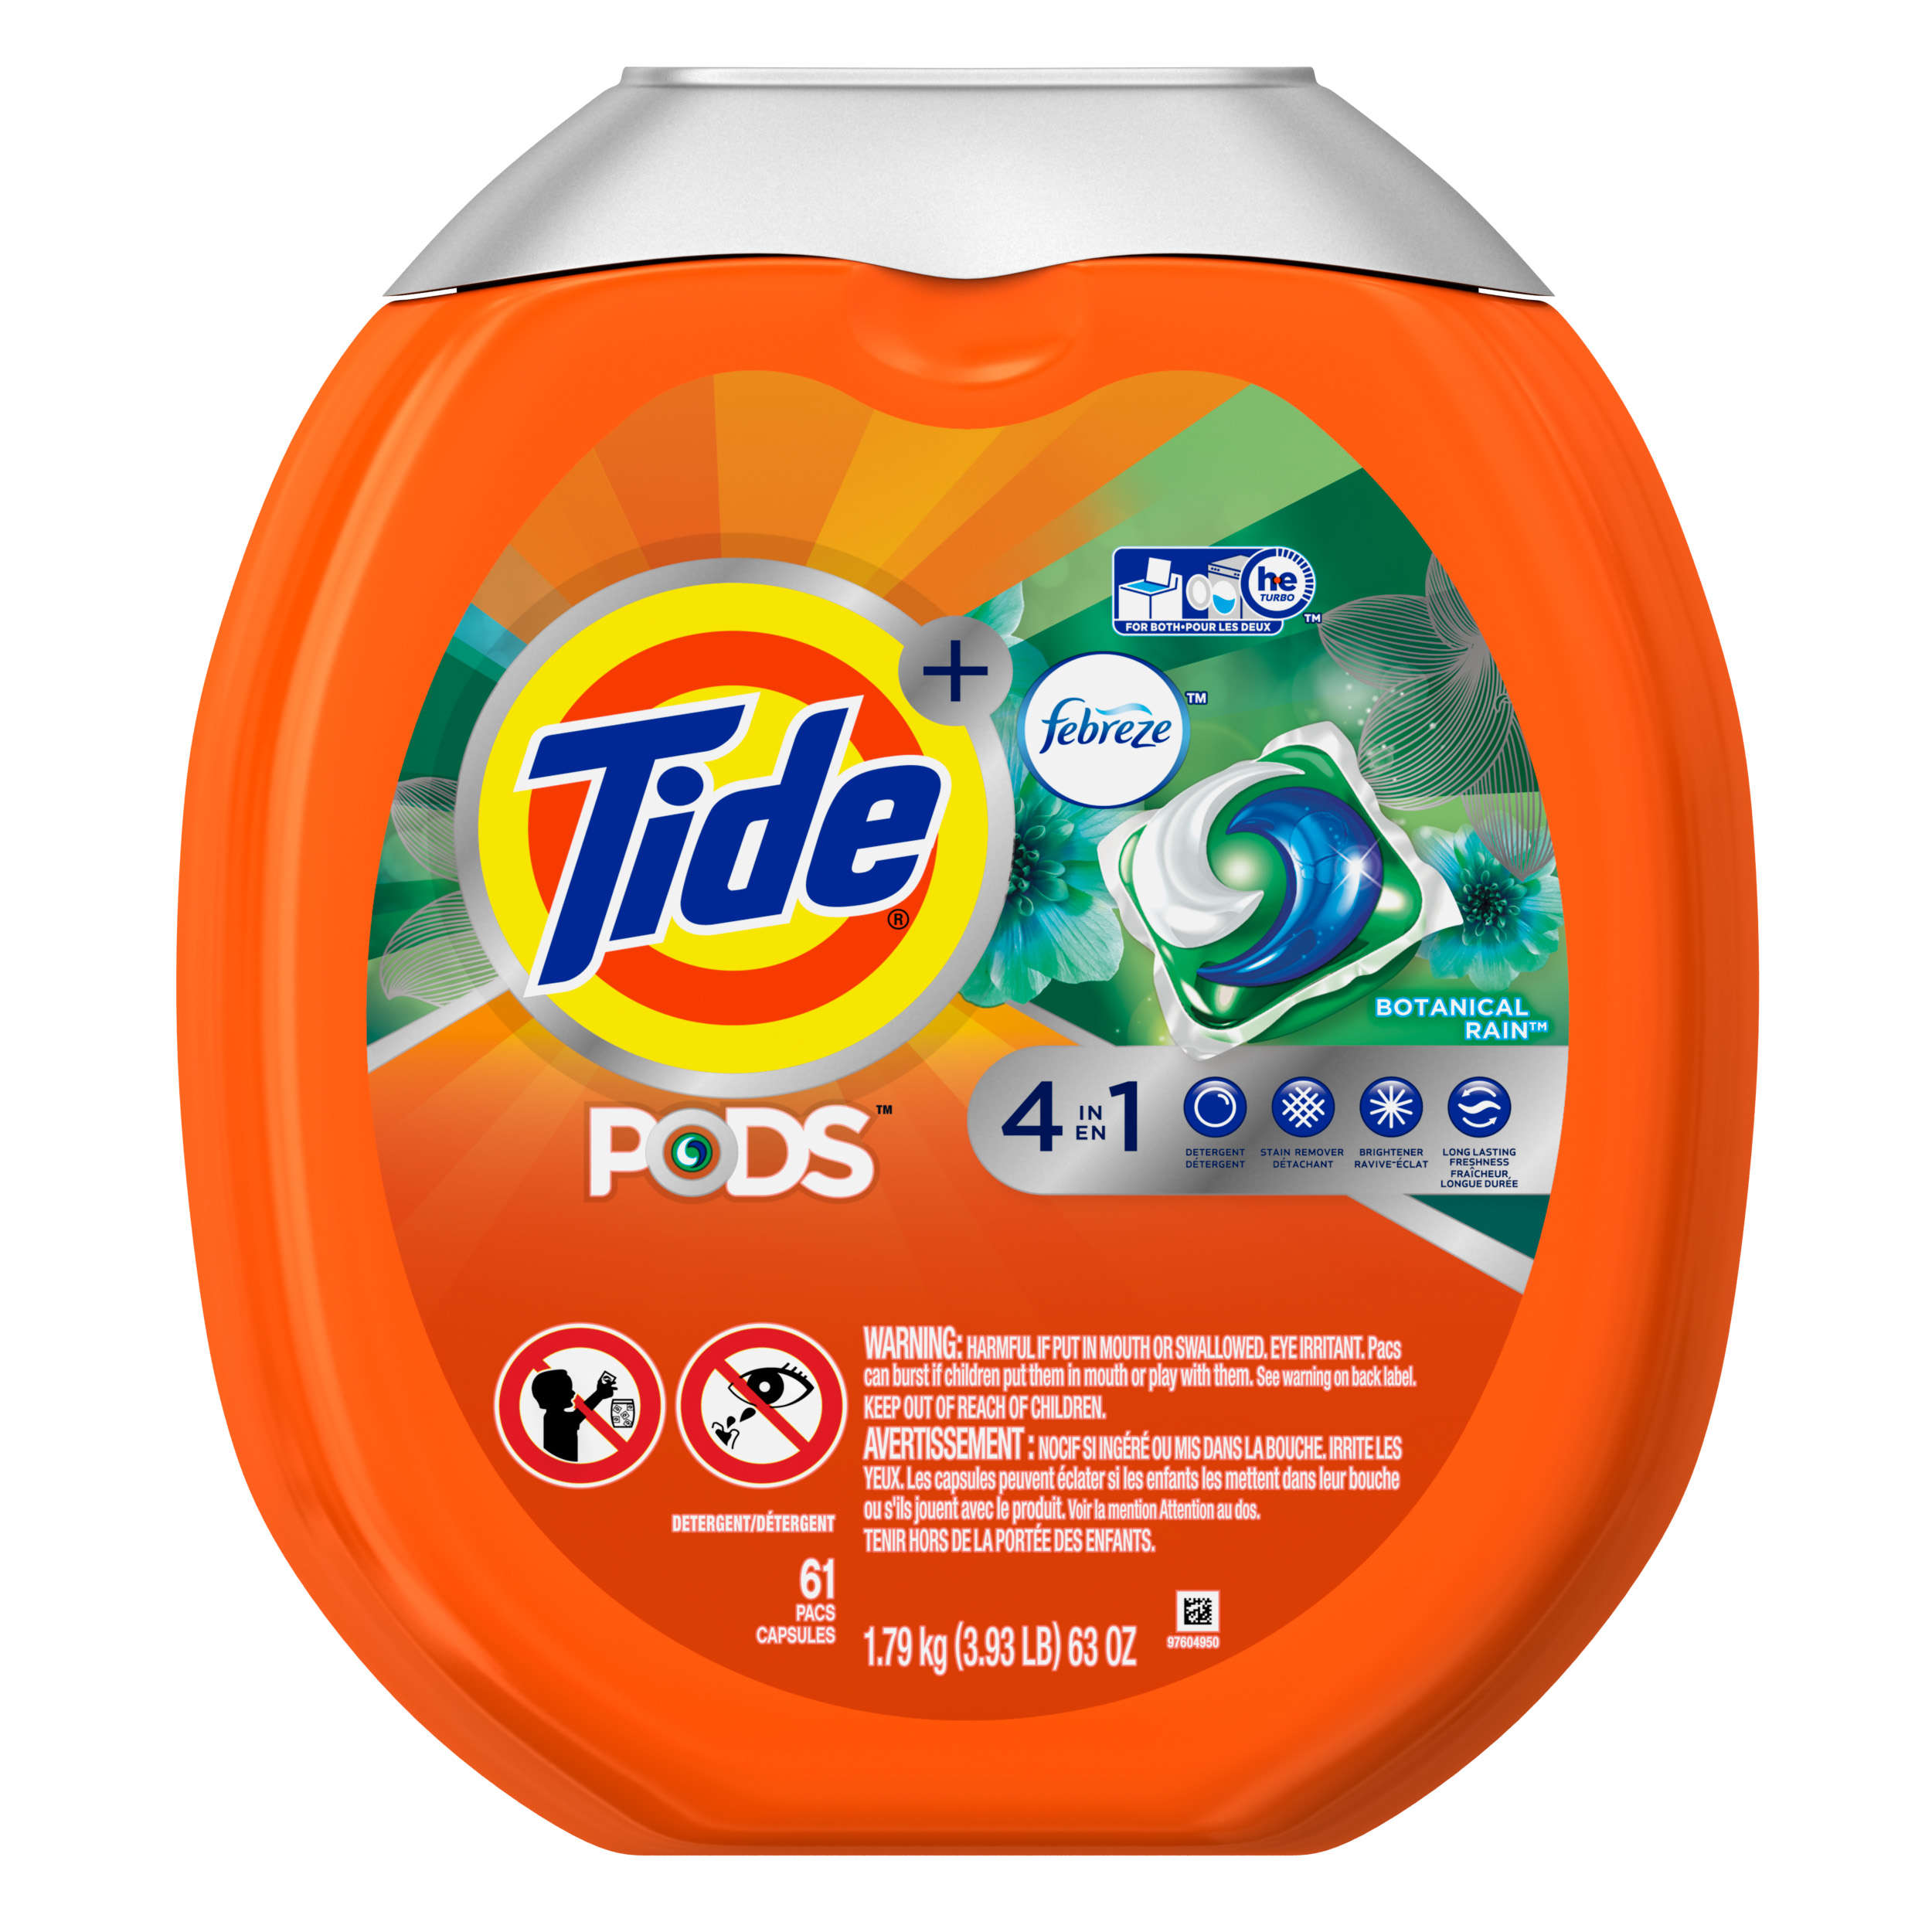 Tide PODS Plus Febreze Laundry Detergent Pacs, Botanical Rain Scent, 61 count, Designed For Regular and HE Washers